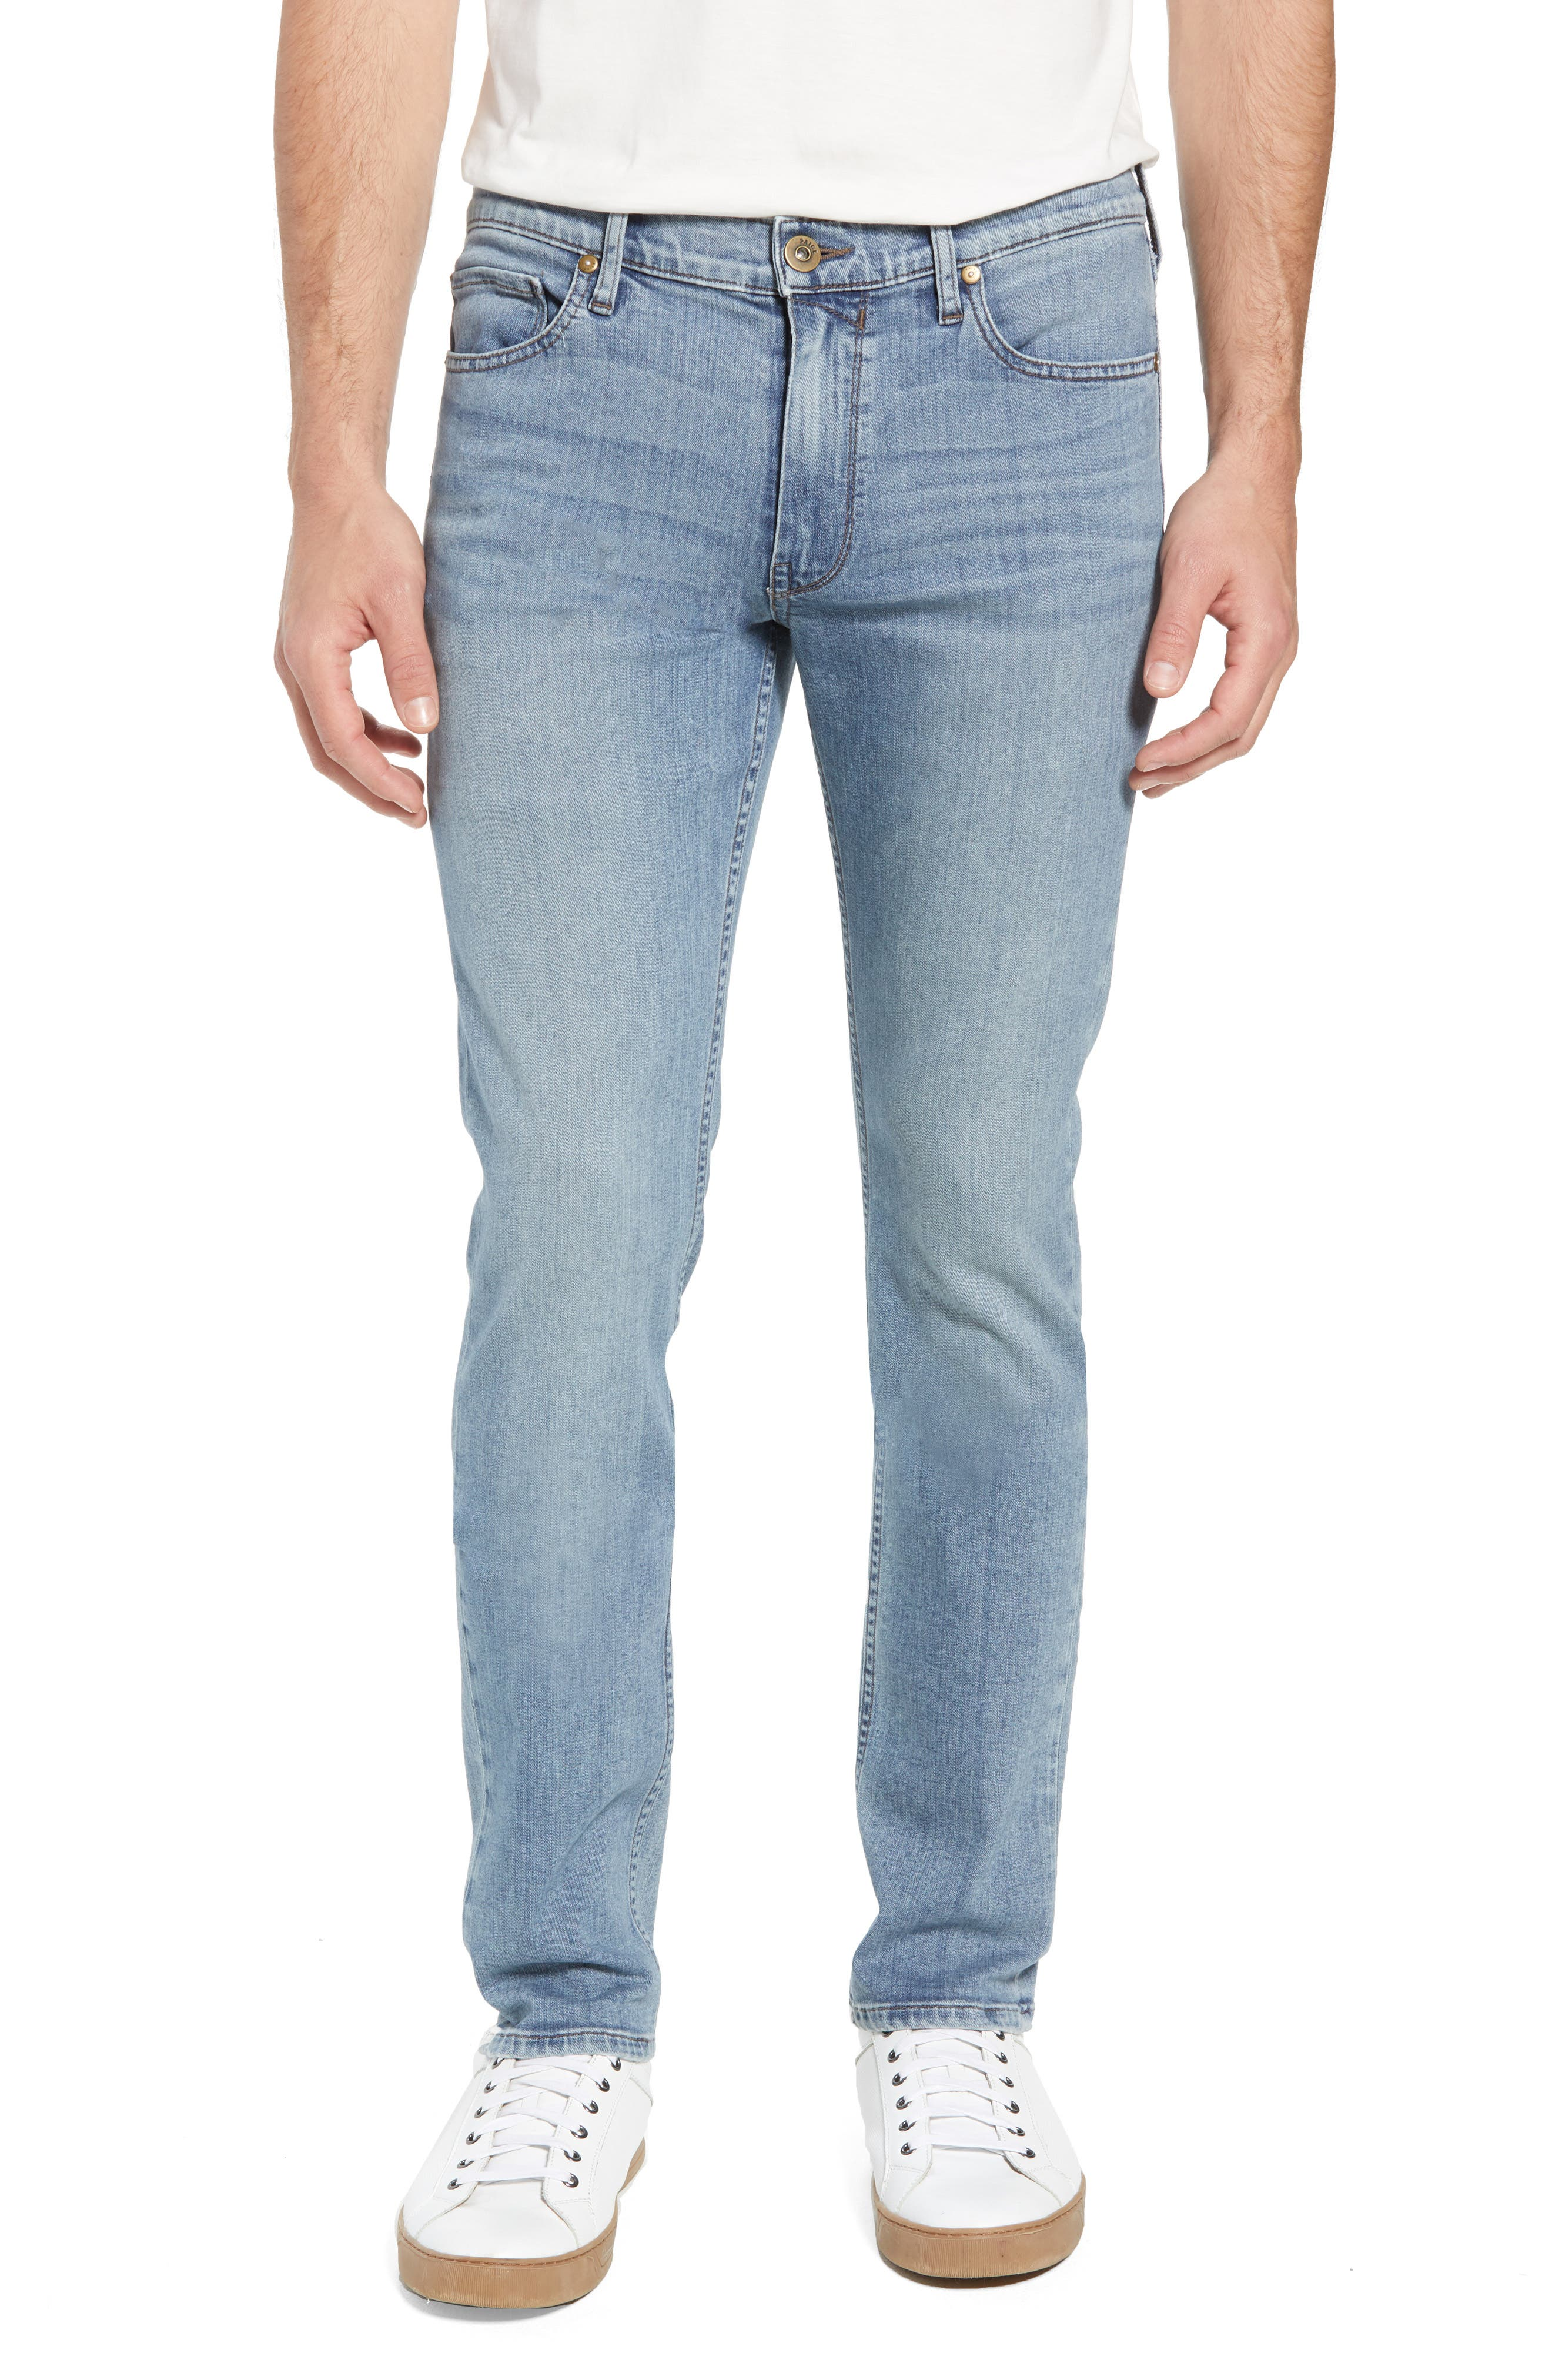 Transcend - Lennox Slim Fit Jeans,                             Main thumbnail 1, color,                             Porter